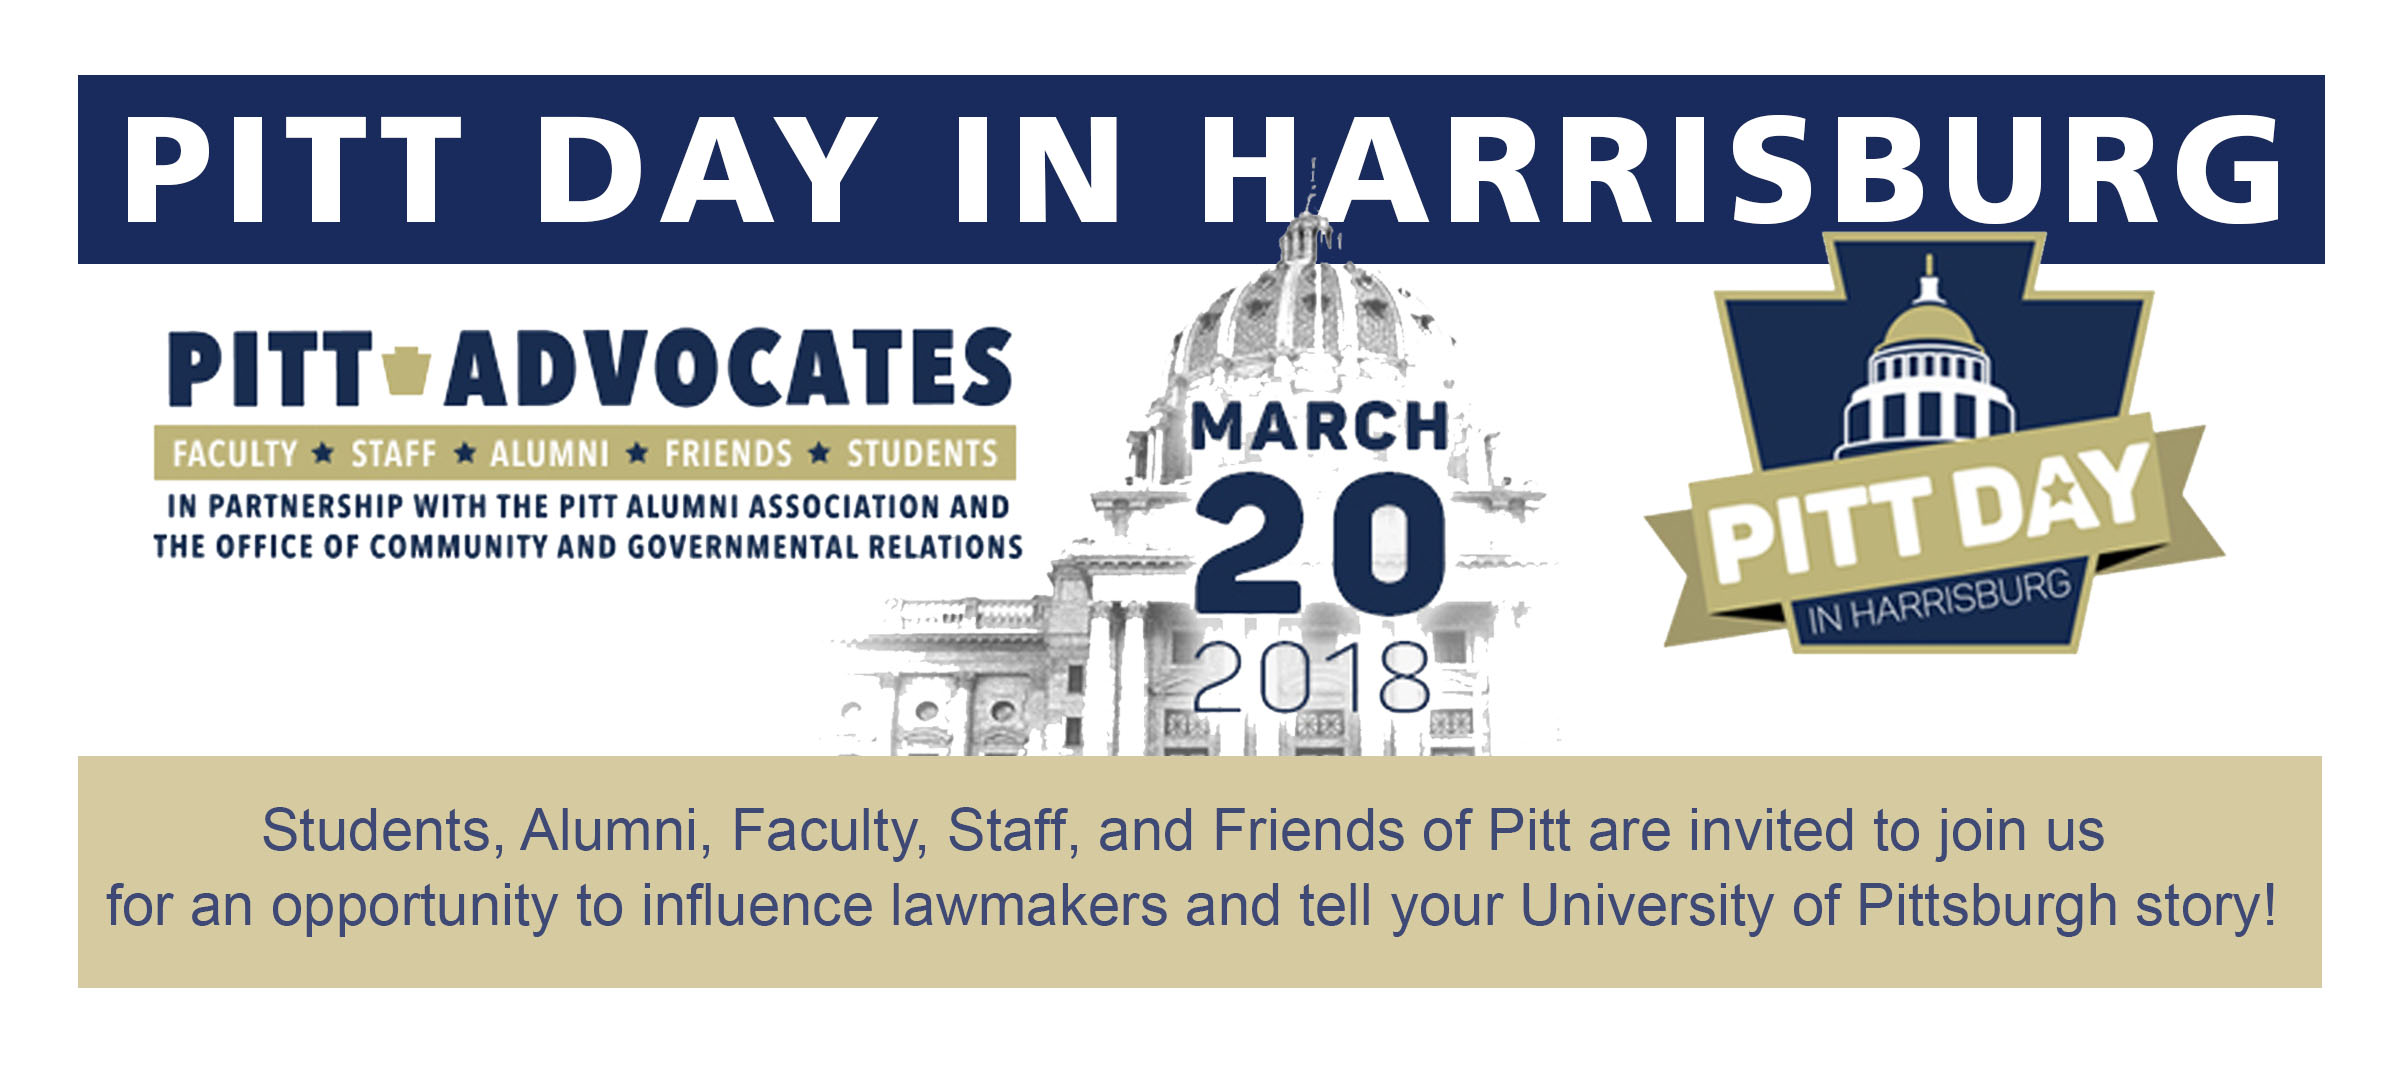 Pitt Day in Harrisburg - March 20, 2018